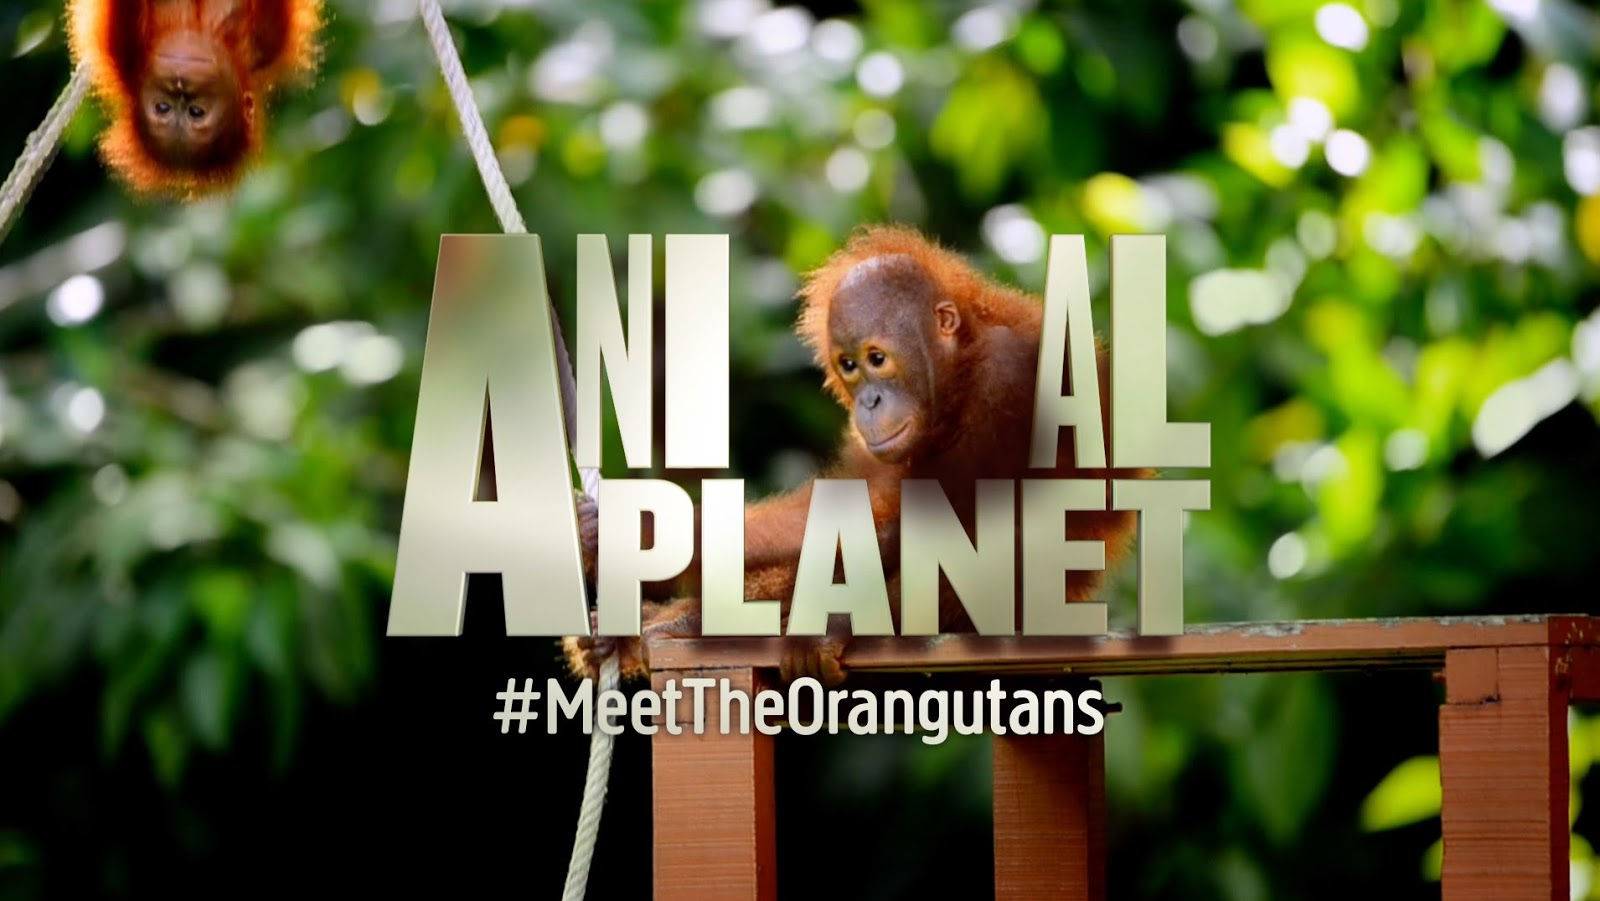 Animal Planet 2016 01 24 Wazzup Pilipinas News And Events